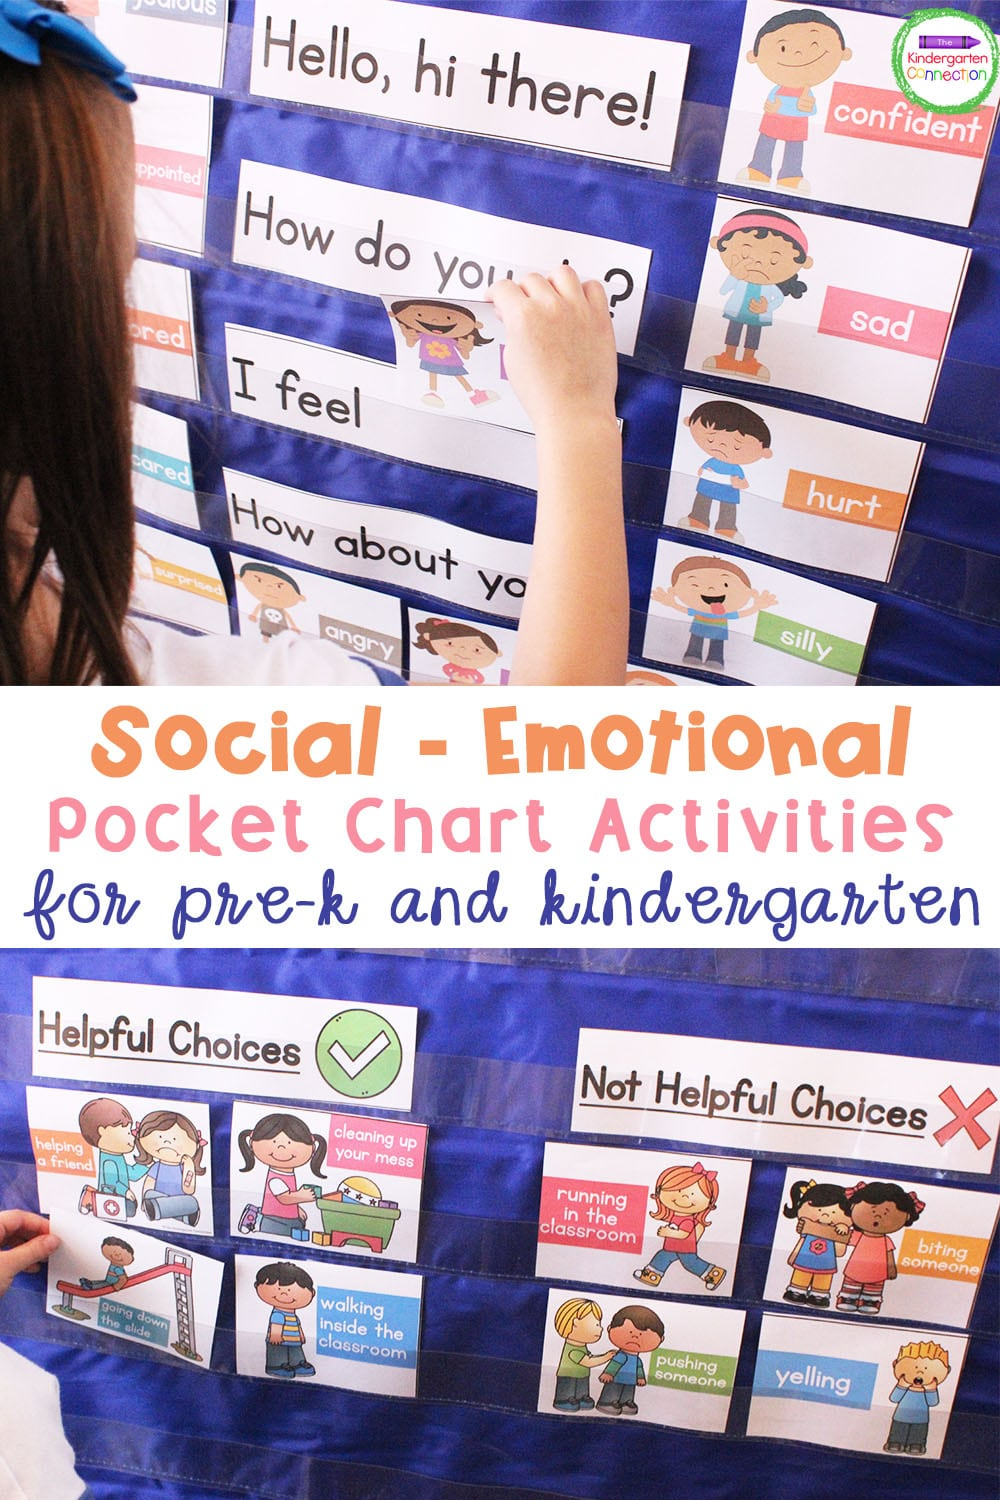 These super fun social-emotional activities for pocket charts are a great way to explore and support the social-emotional needs of your students!